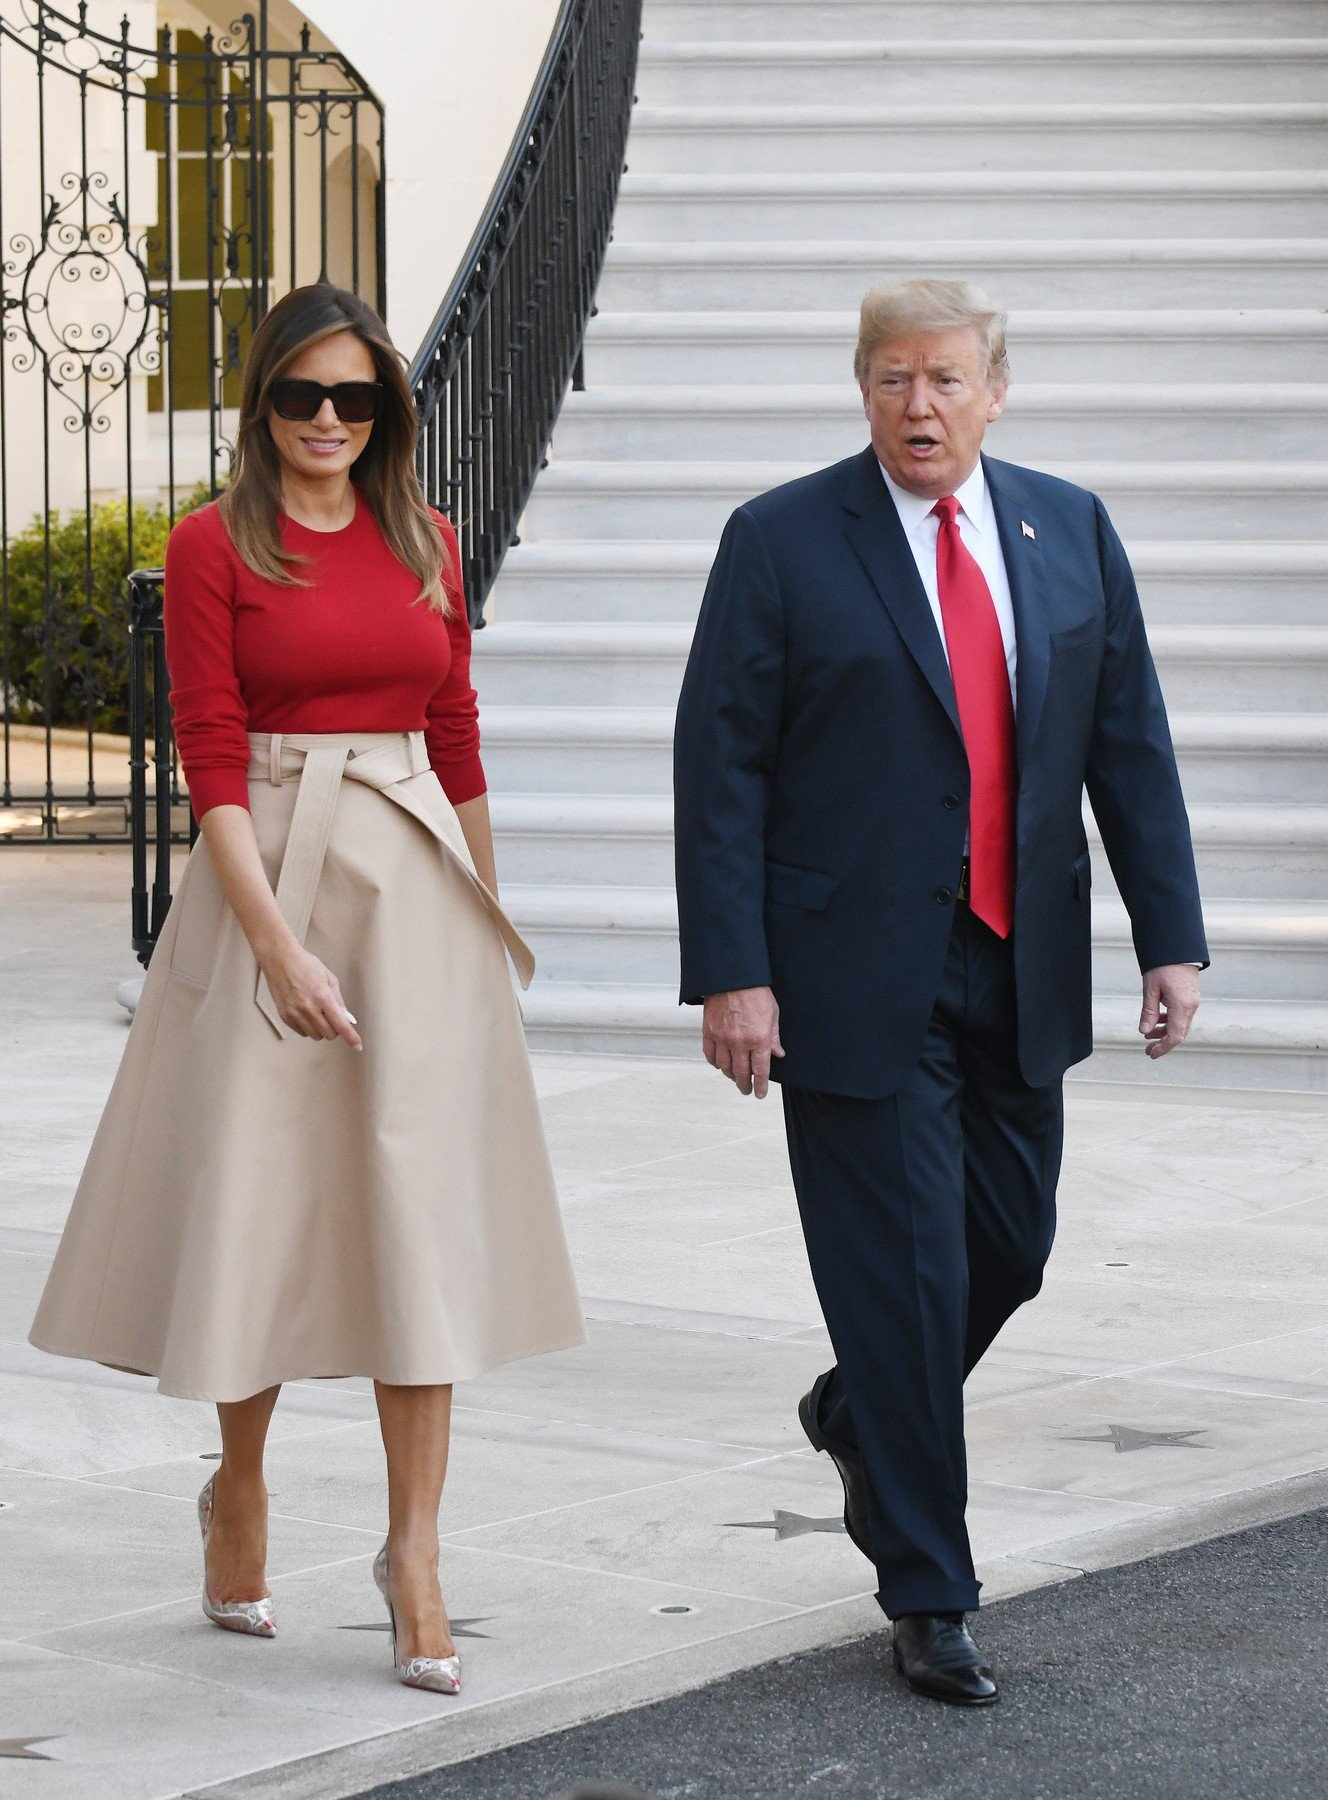 U.S. President Donald Trump and First Lady Melania Trump depart the White House en route to Brussels, Belgium, July 10, 2018 in Washington, DC., Image: 377430085, License: Rights-managed, Restrictions: , Model Release: no, Credit line: Profimedia, Abaca